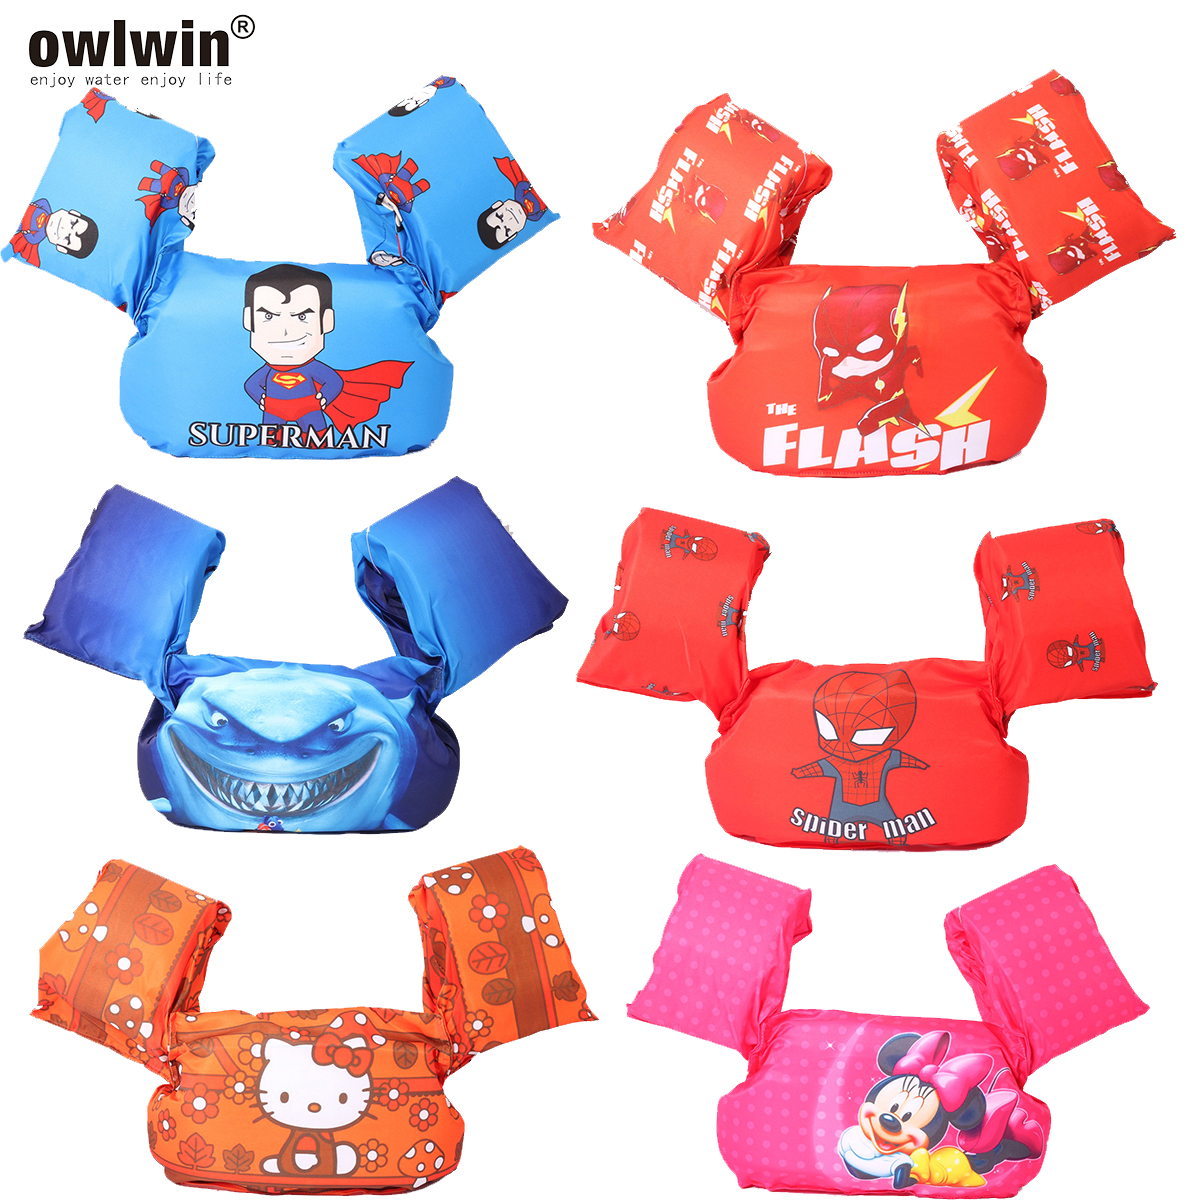 Owlwin Puddle Jumper Baby Life Vest Life Jacket Baby Swimsuit Swimwear 14-25KG Baby Kids Arm Ring Floats Foam Safety Swim Rings